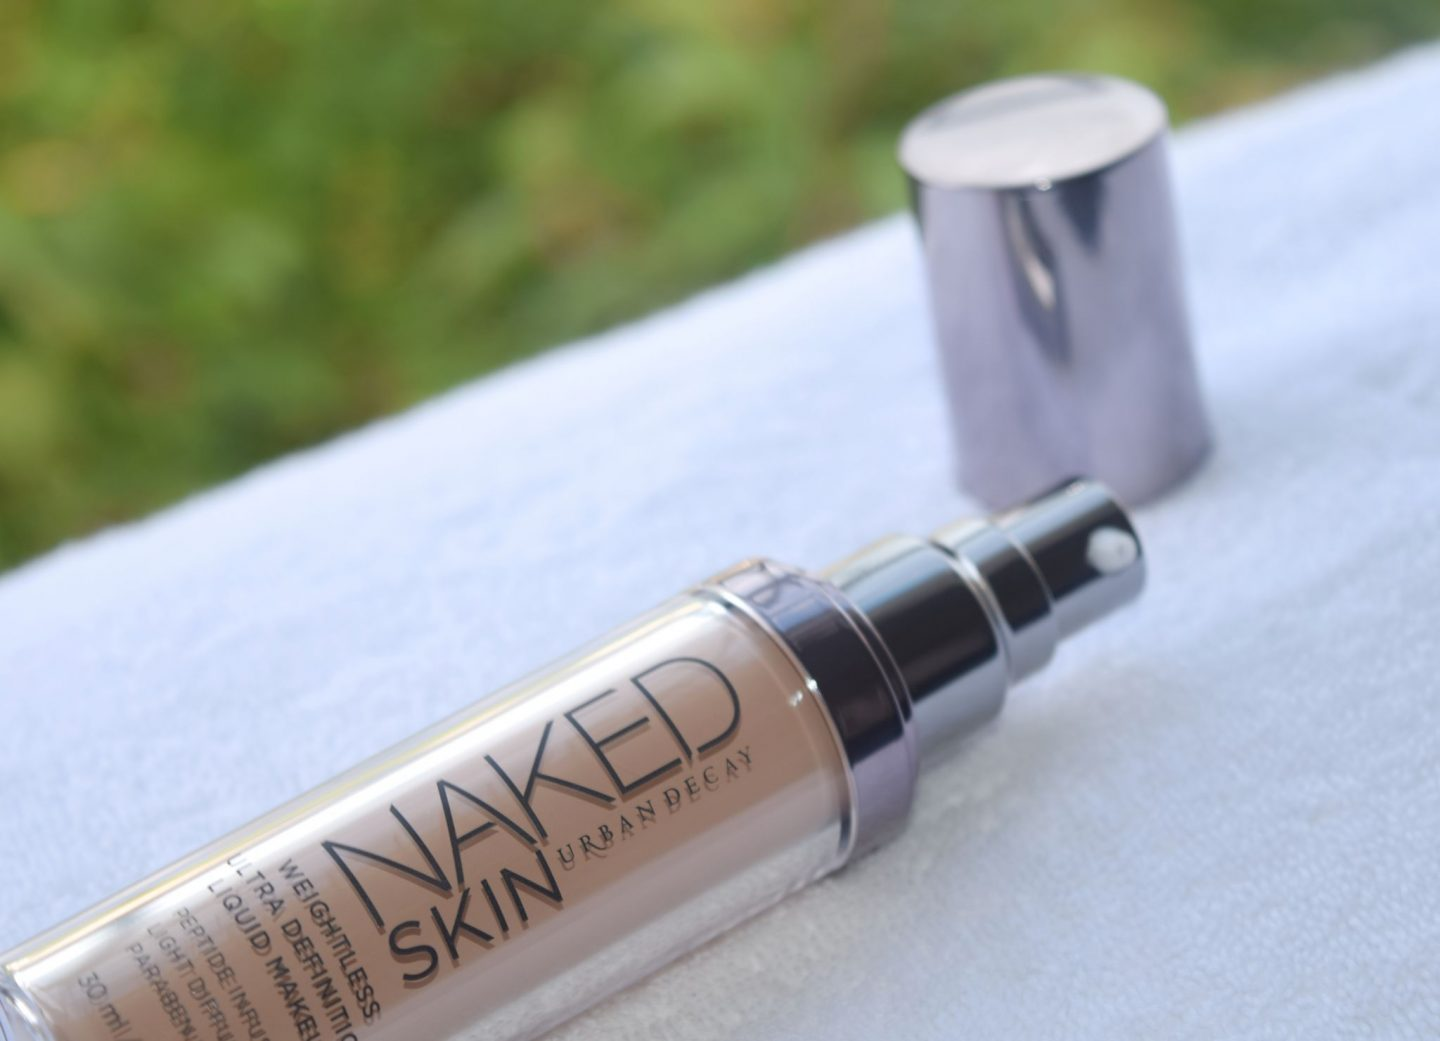 Urban Decay Naked Skin Weightless Foundation 0.5 review